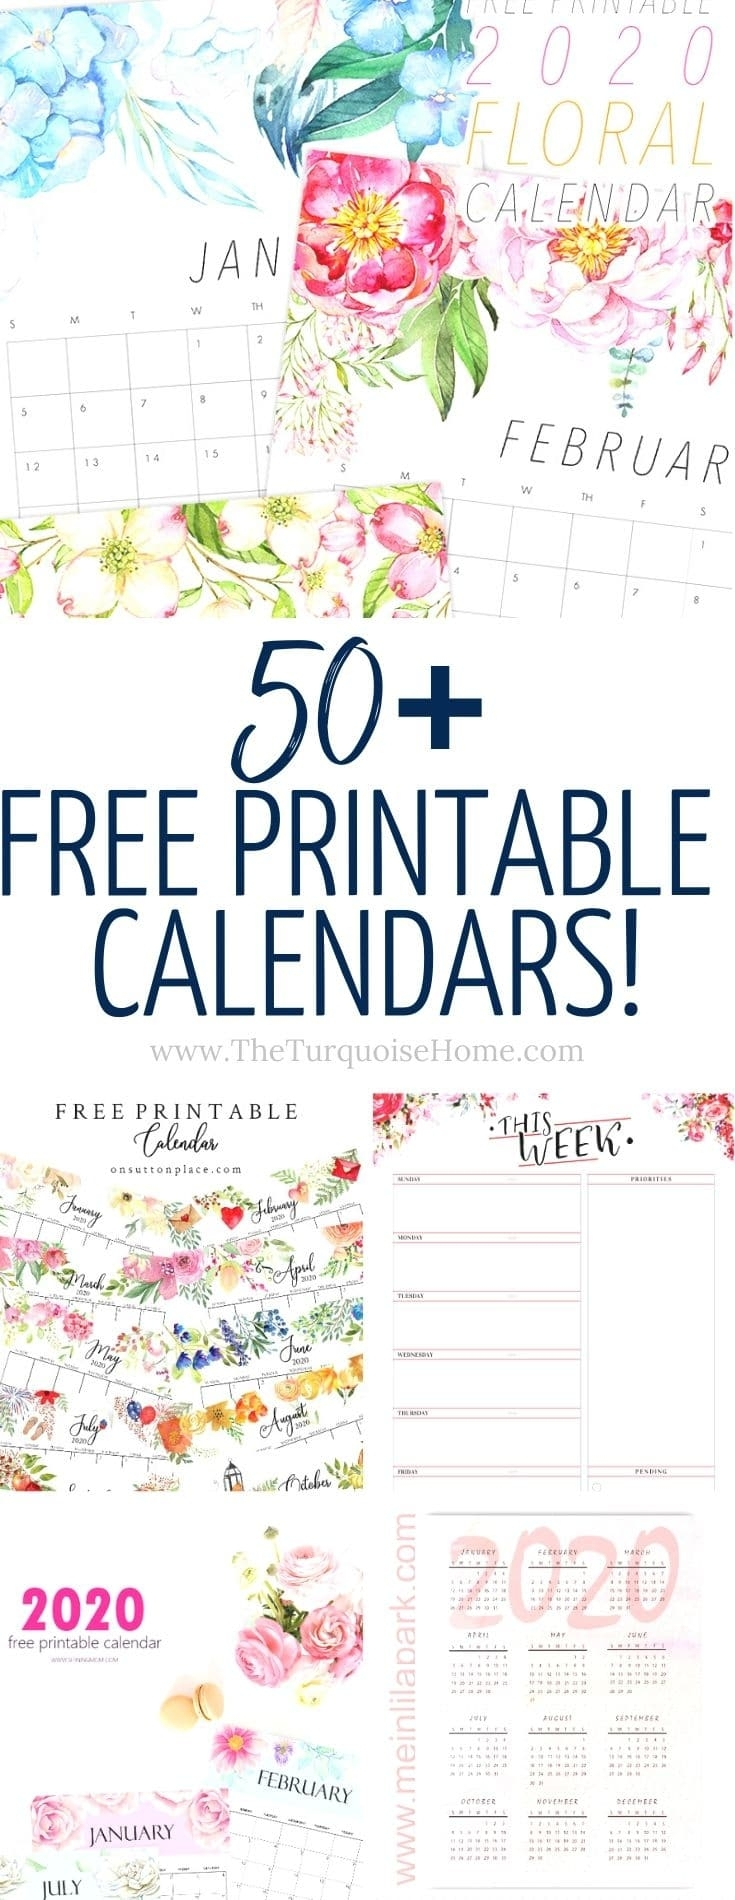 Pick Free Printable Calendar No Download Required